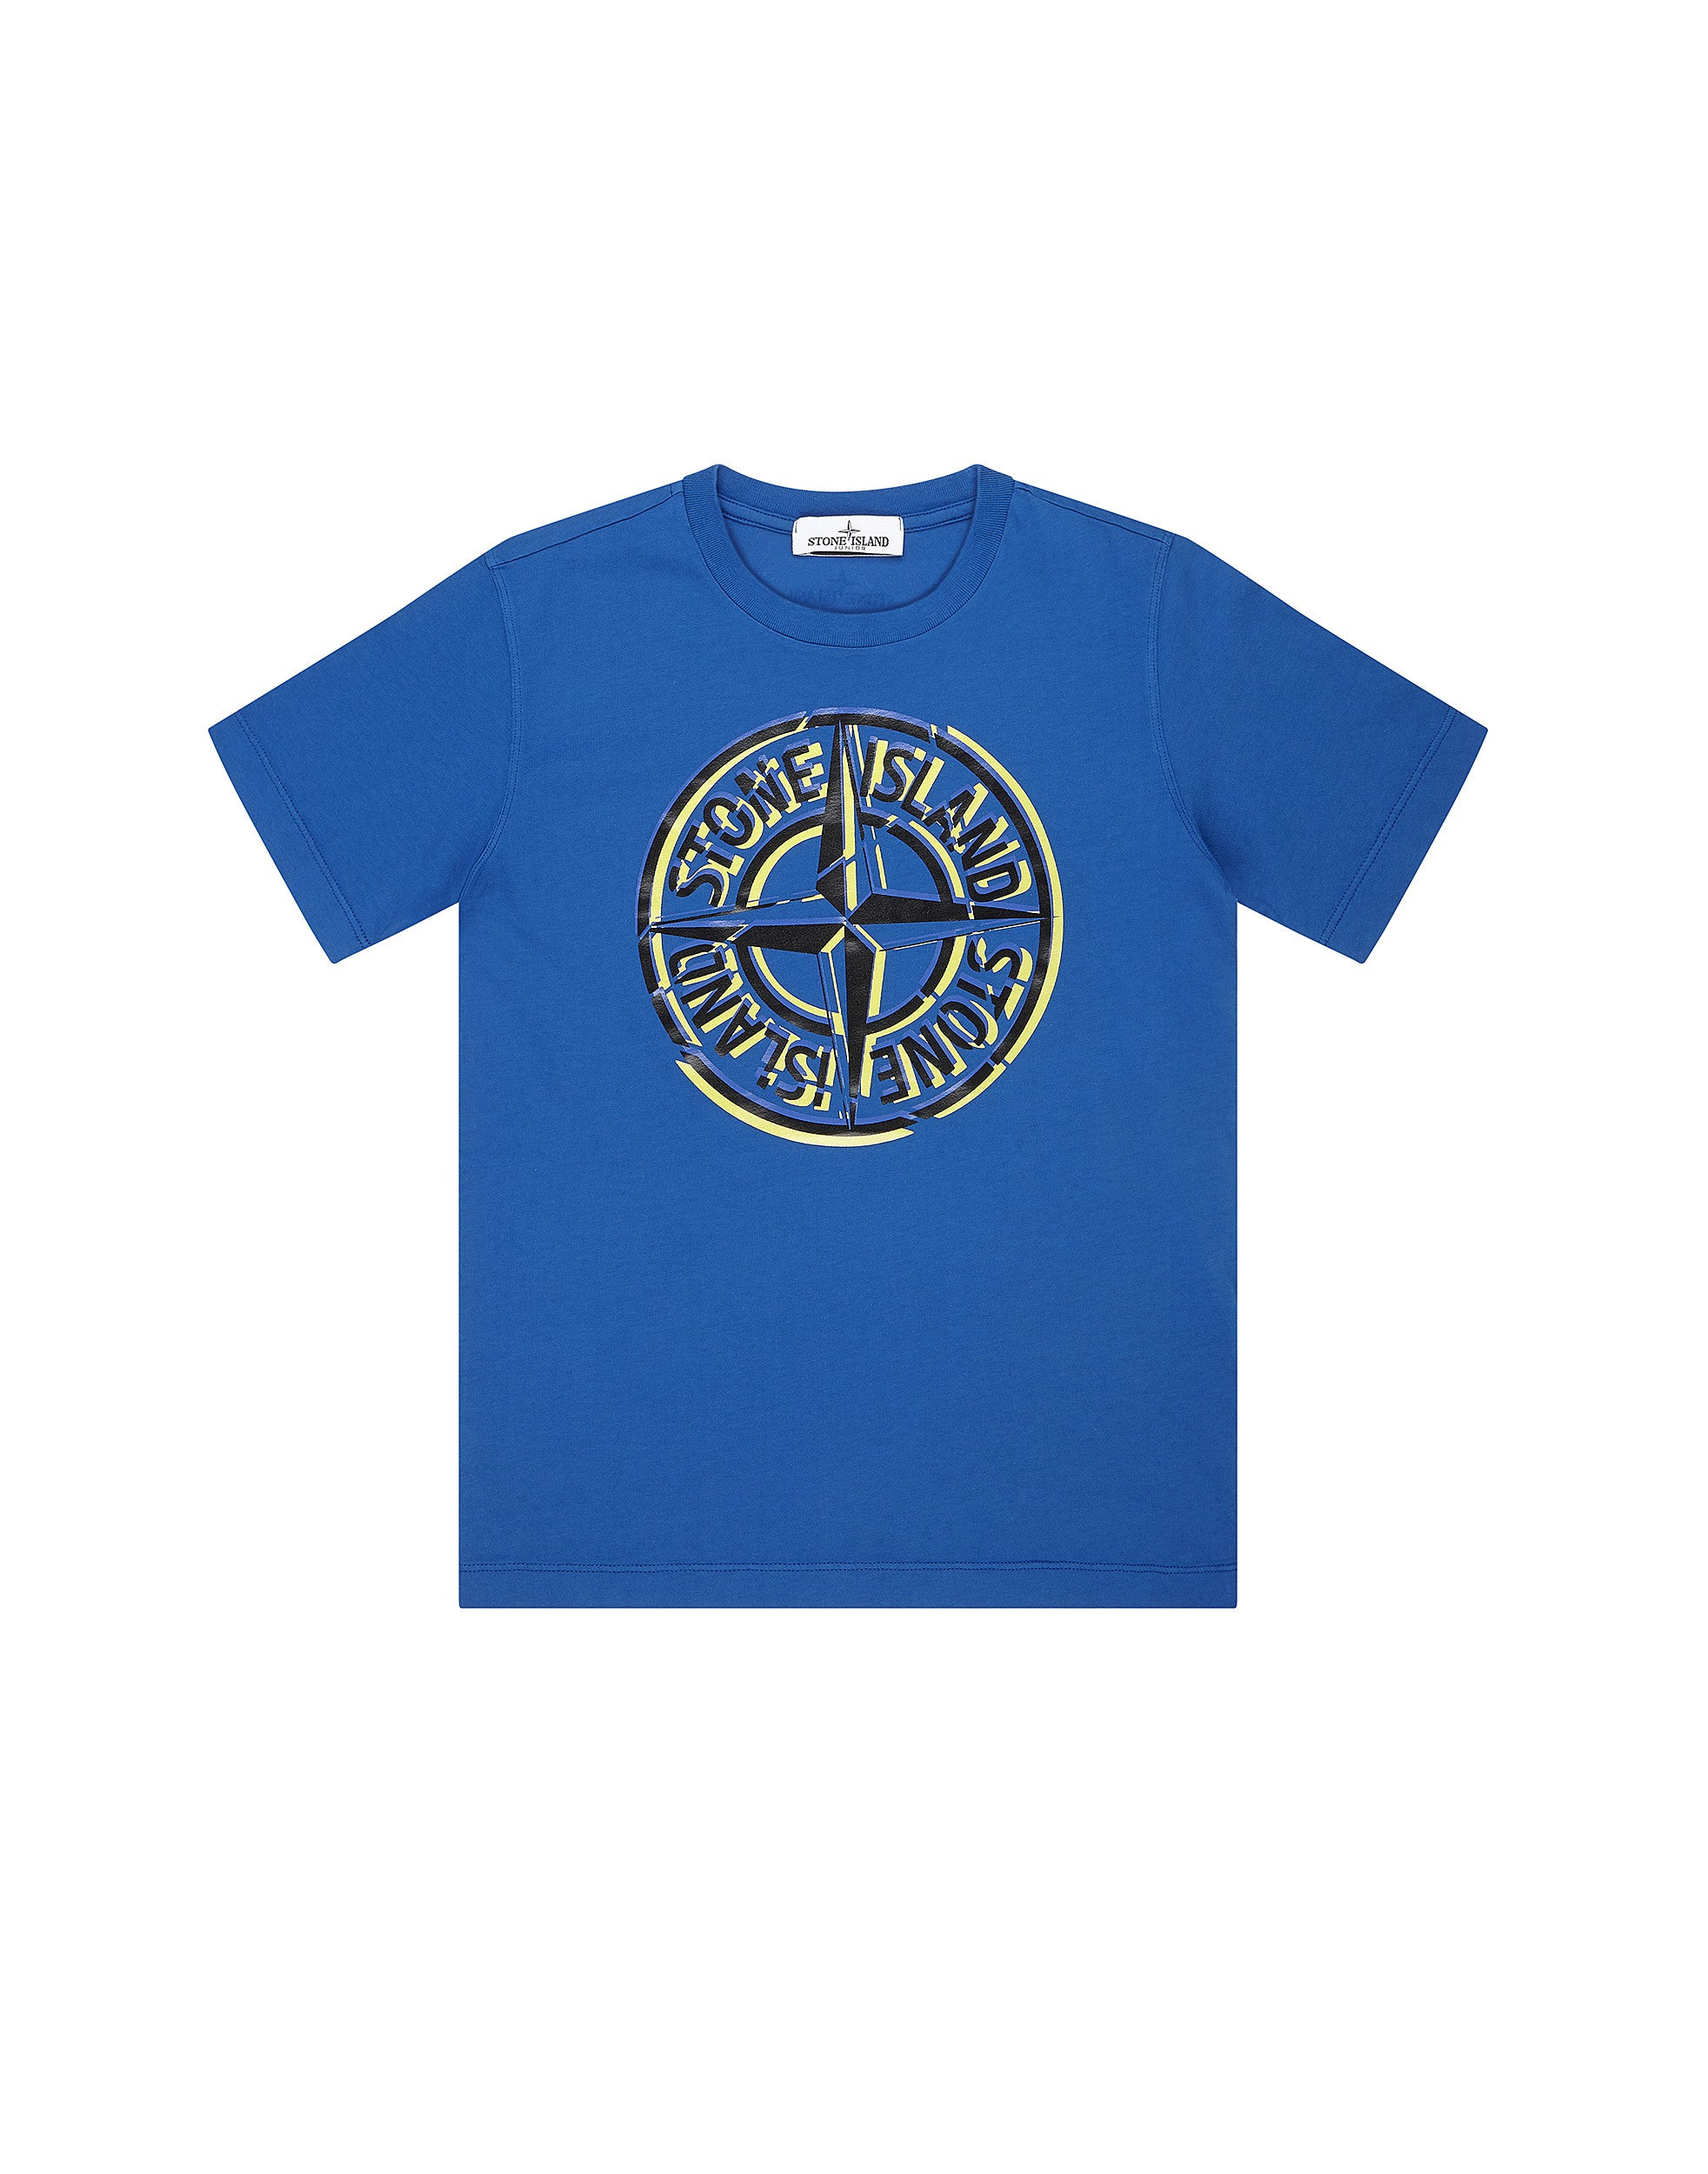 21051 Printed T-Shirt in Blue